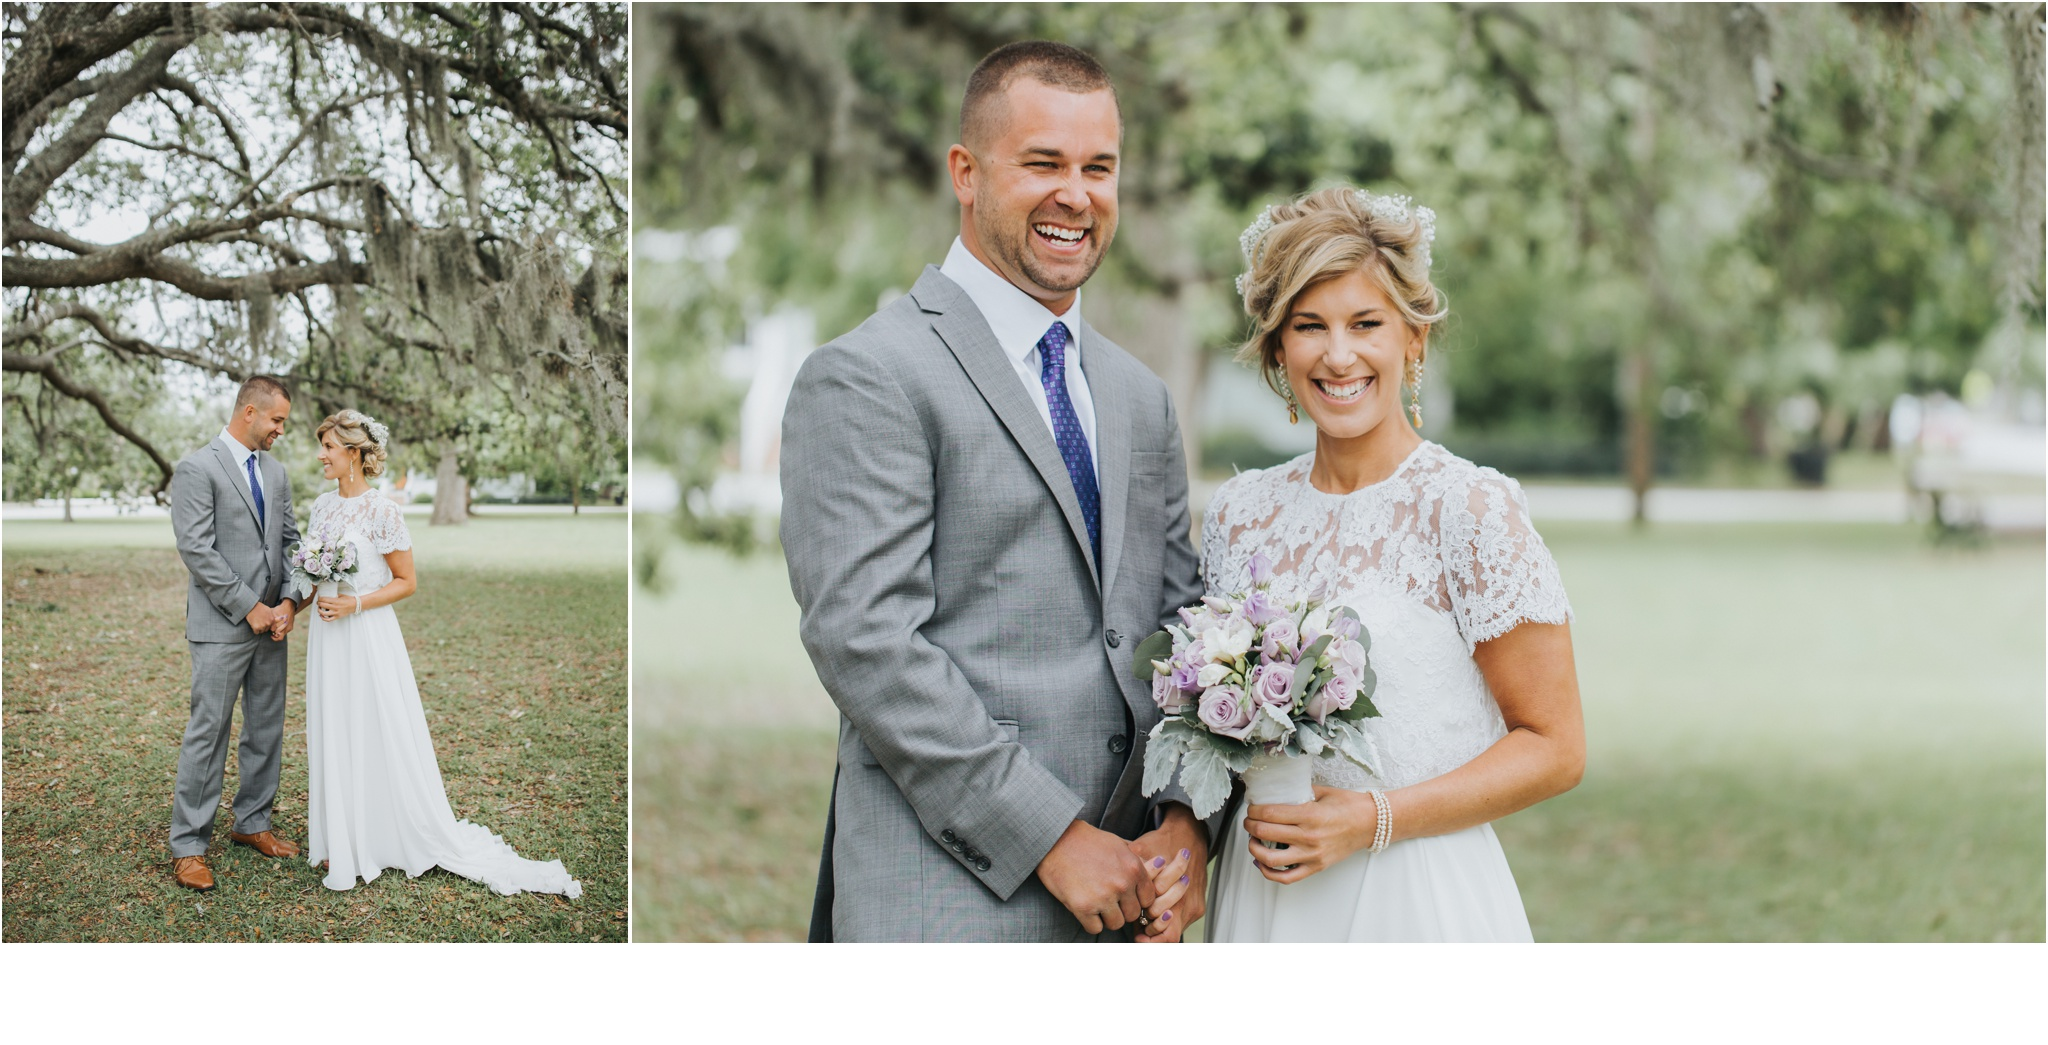 Rainey_Gregg_Photography_St._Simons_Island_Georgia_California_Wedding_Portrait_Photography_1506.jpg